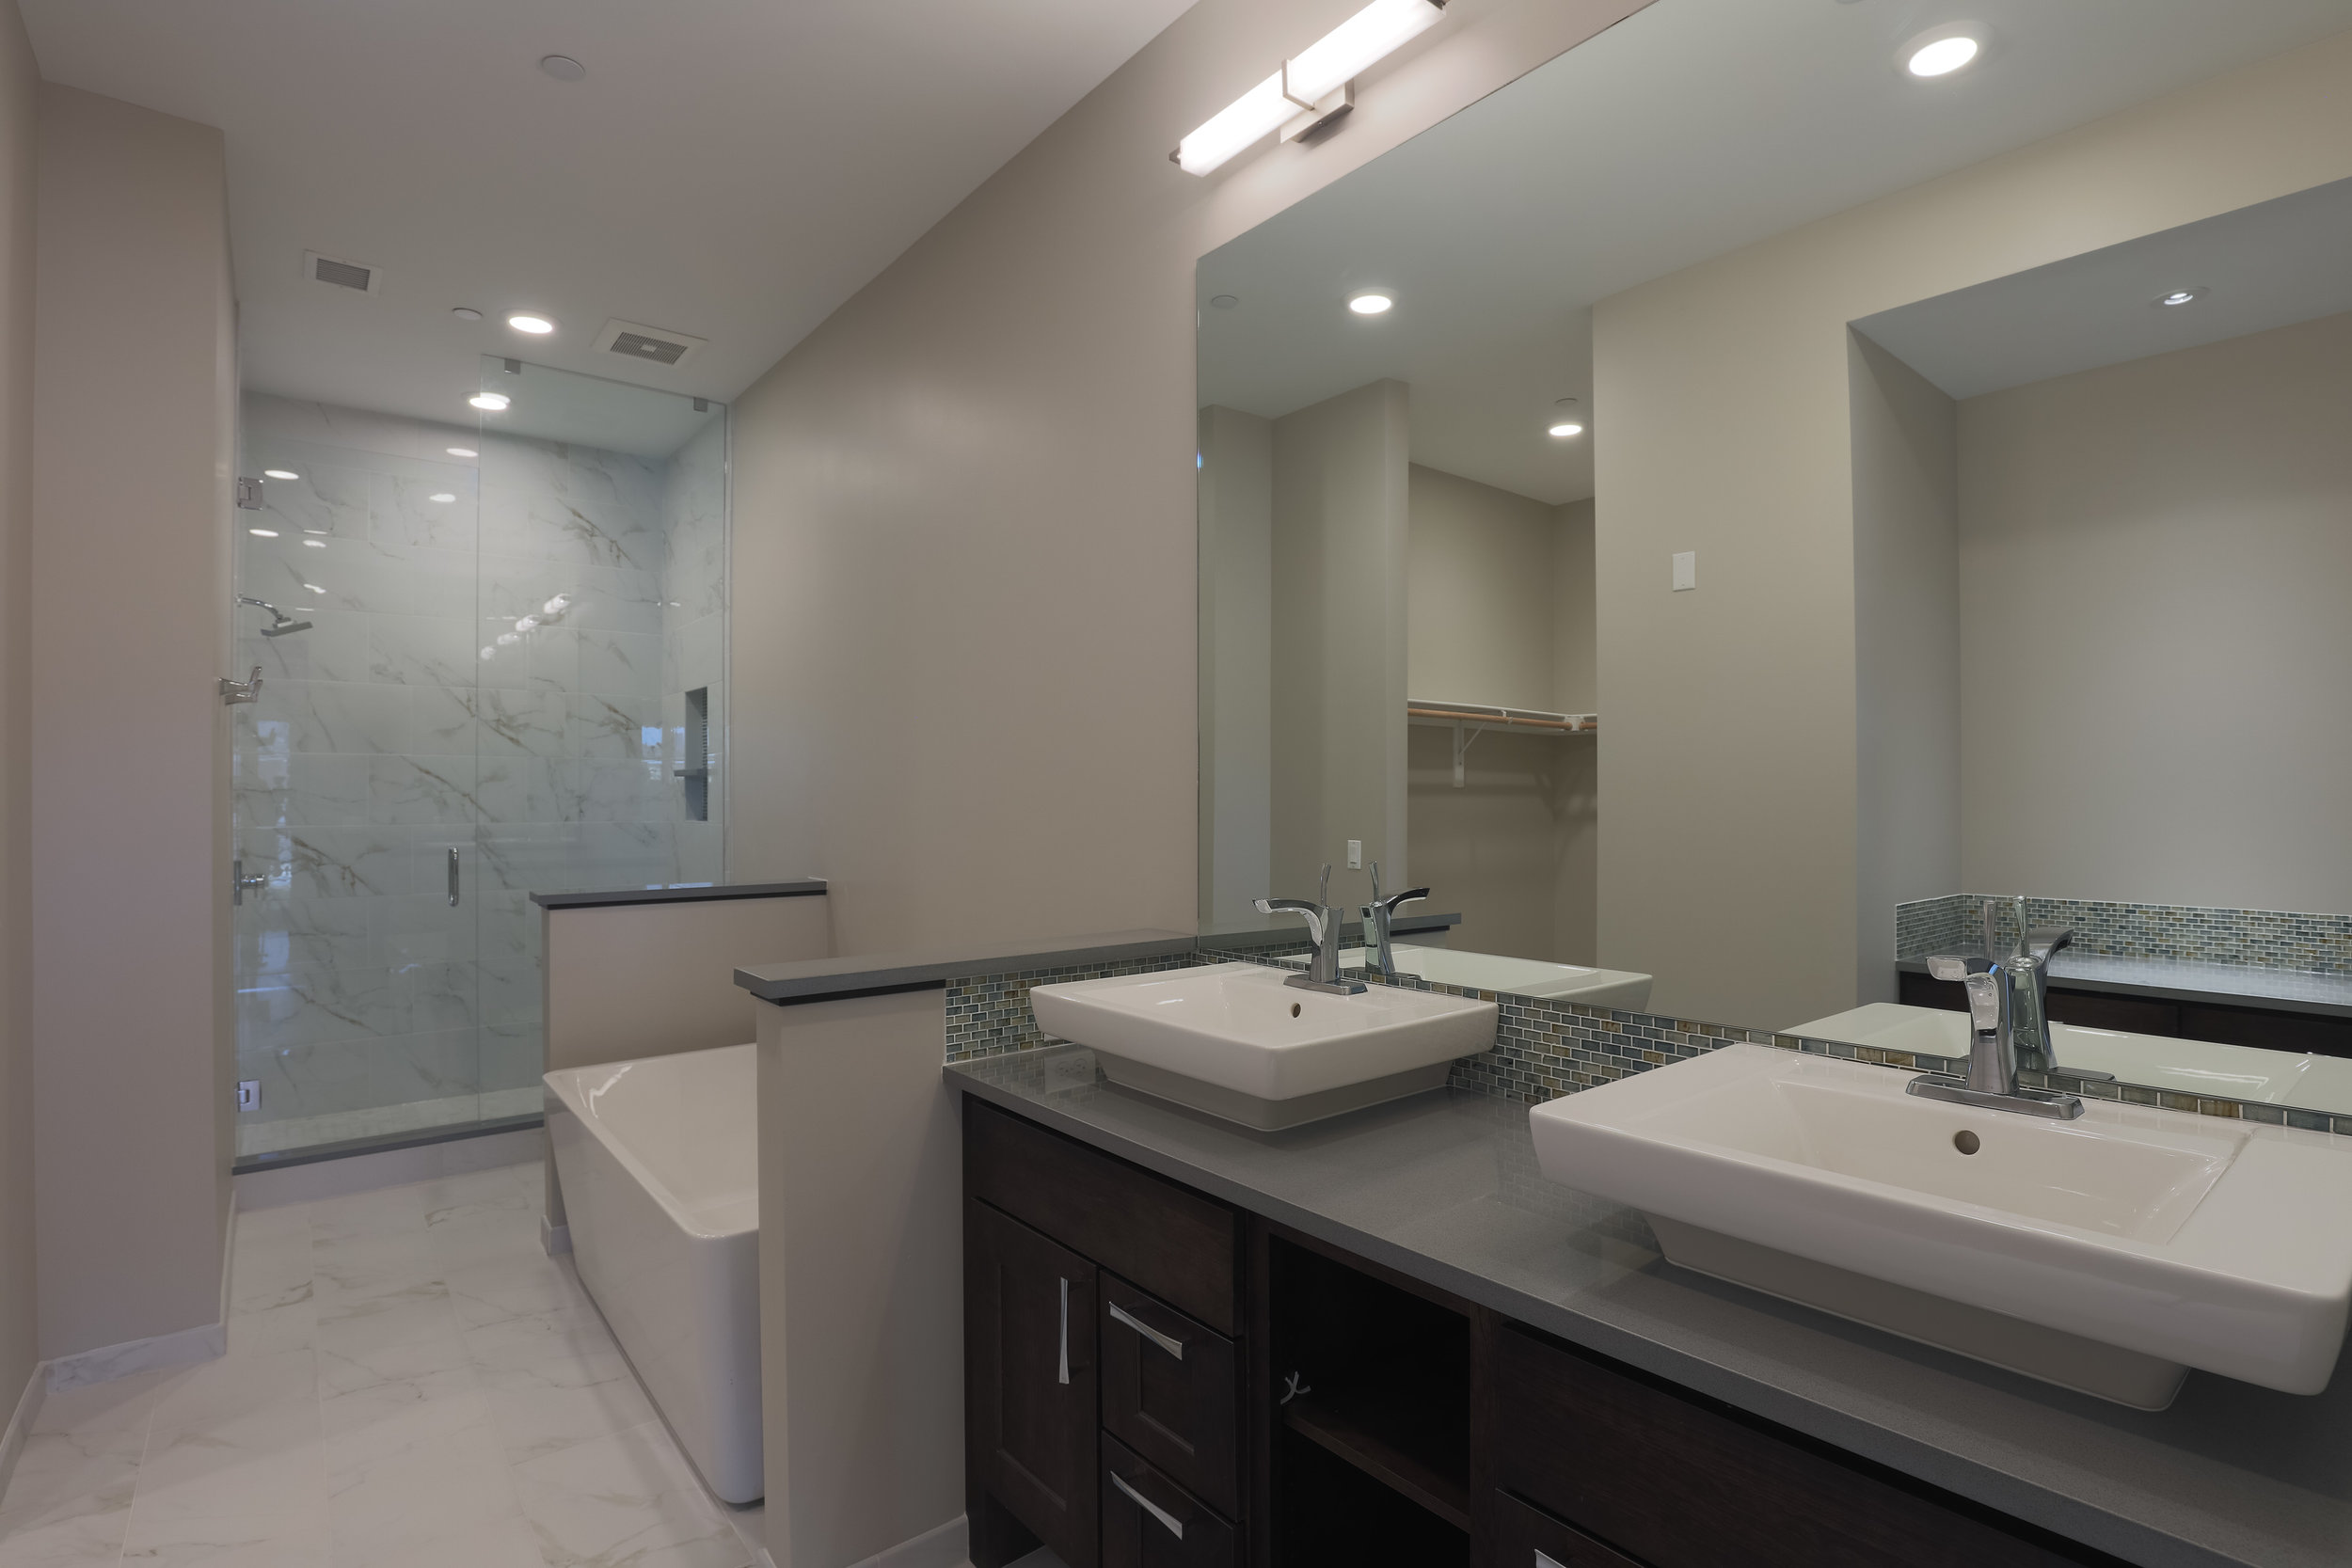 MINERS POINT  | 701 12th Street | Master Bath| Sold & Occupied Unit